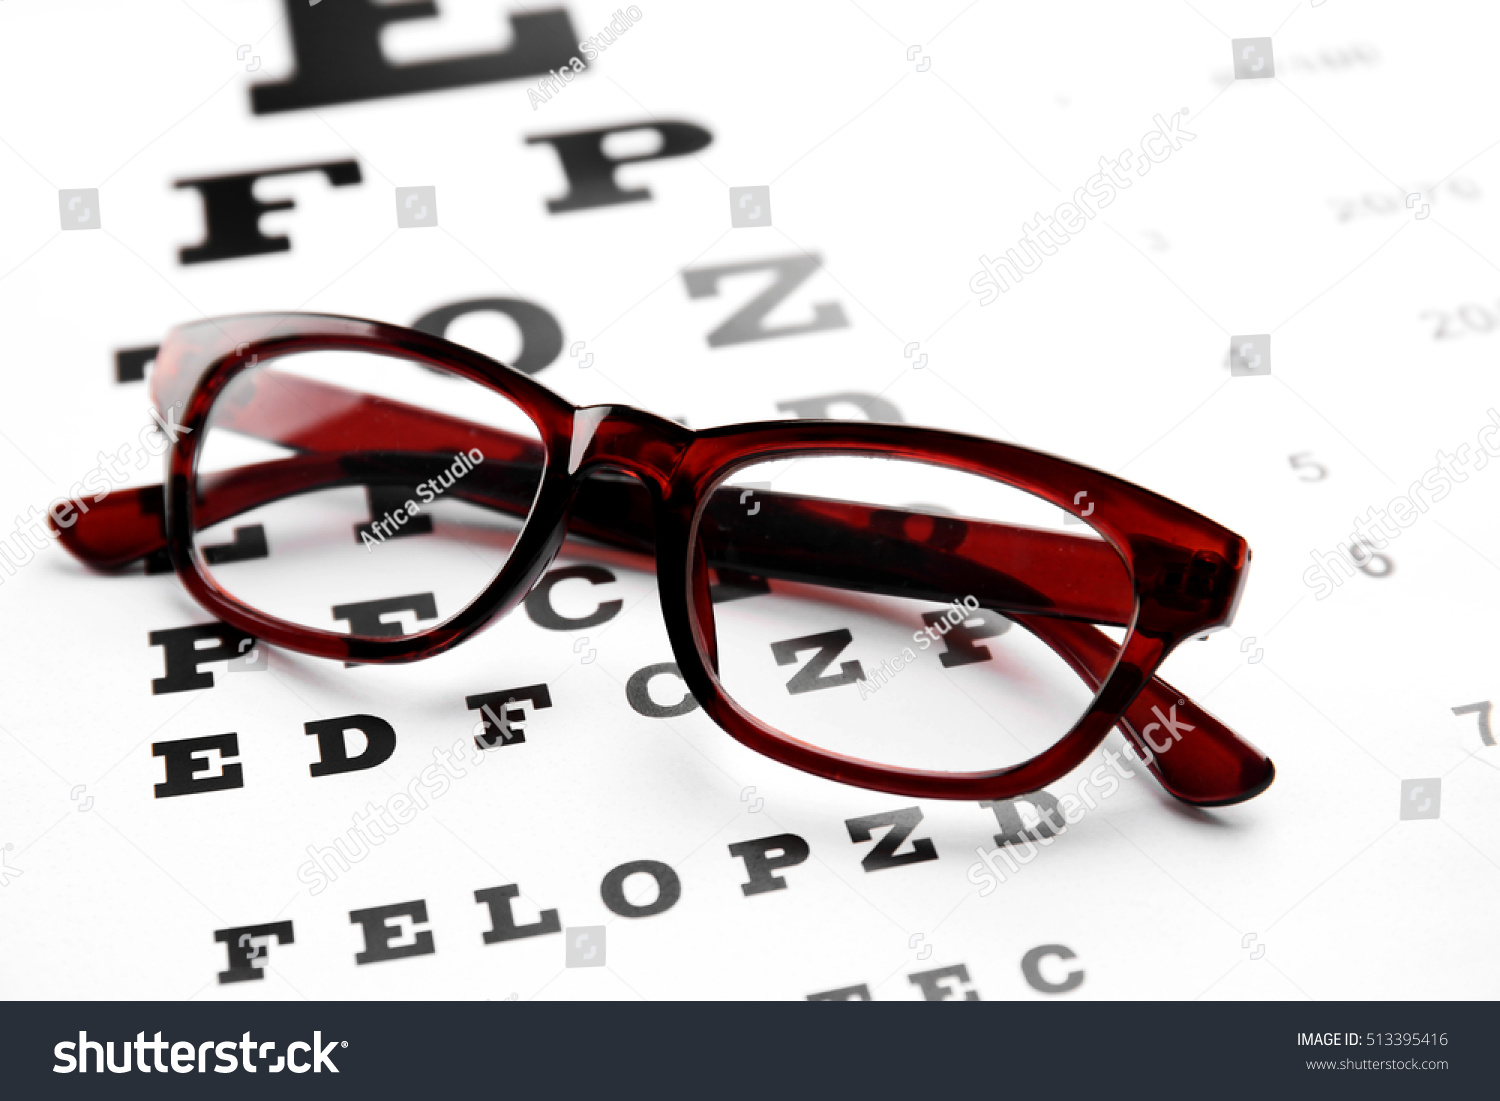 Glasses lying on eye test chart stock photo 513395416 shutterstock glasses lying on eye test chart close up view healthy eyes concept geenschuldenfo Image collections